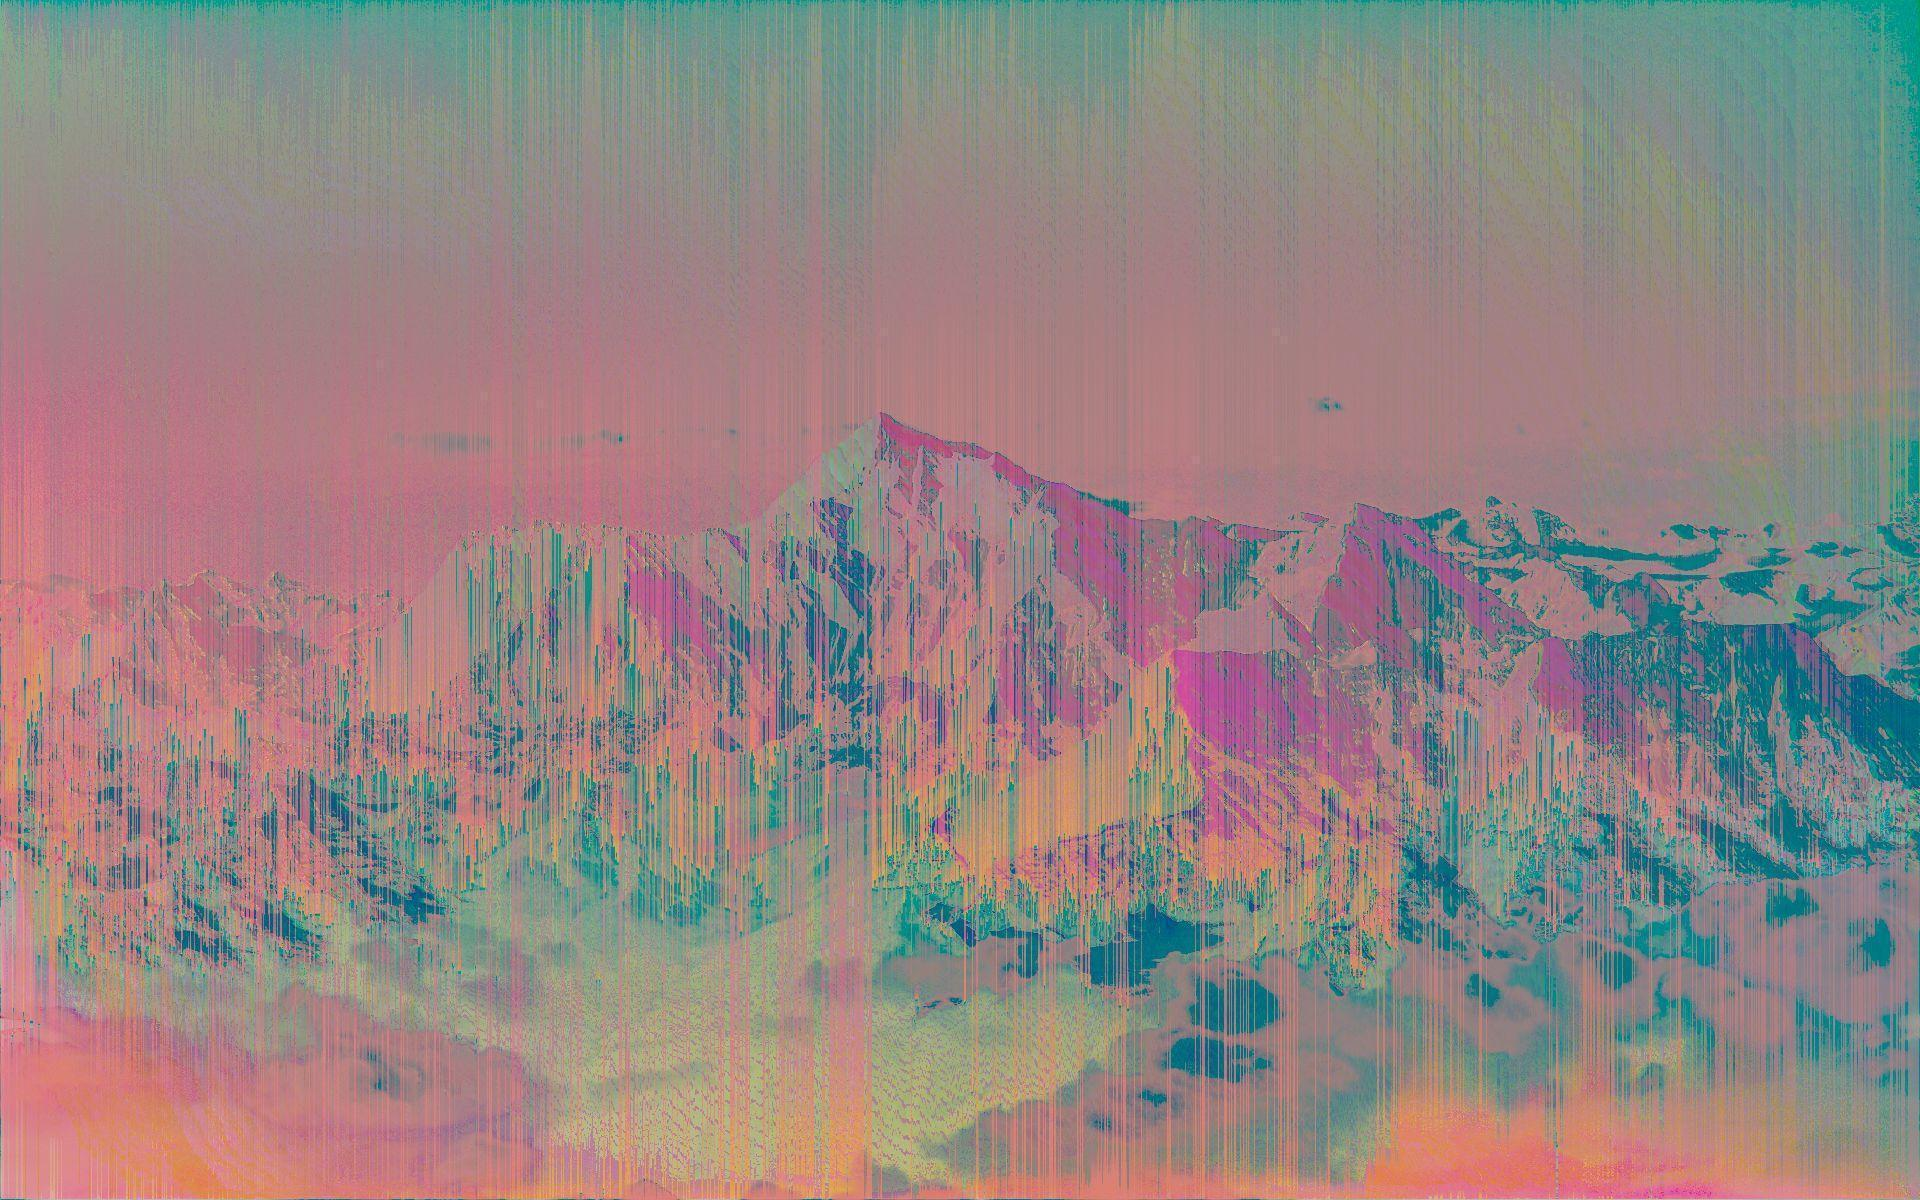 vaporwave backgroundjpeg by soopa46 - photo #24